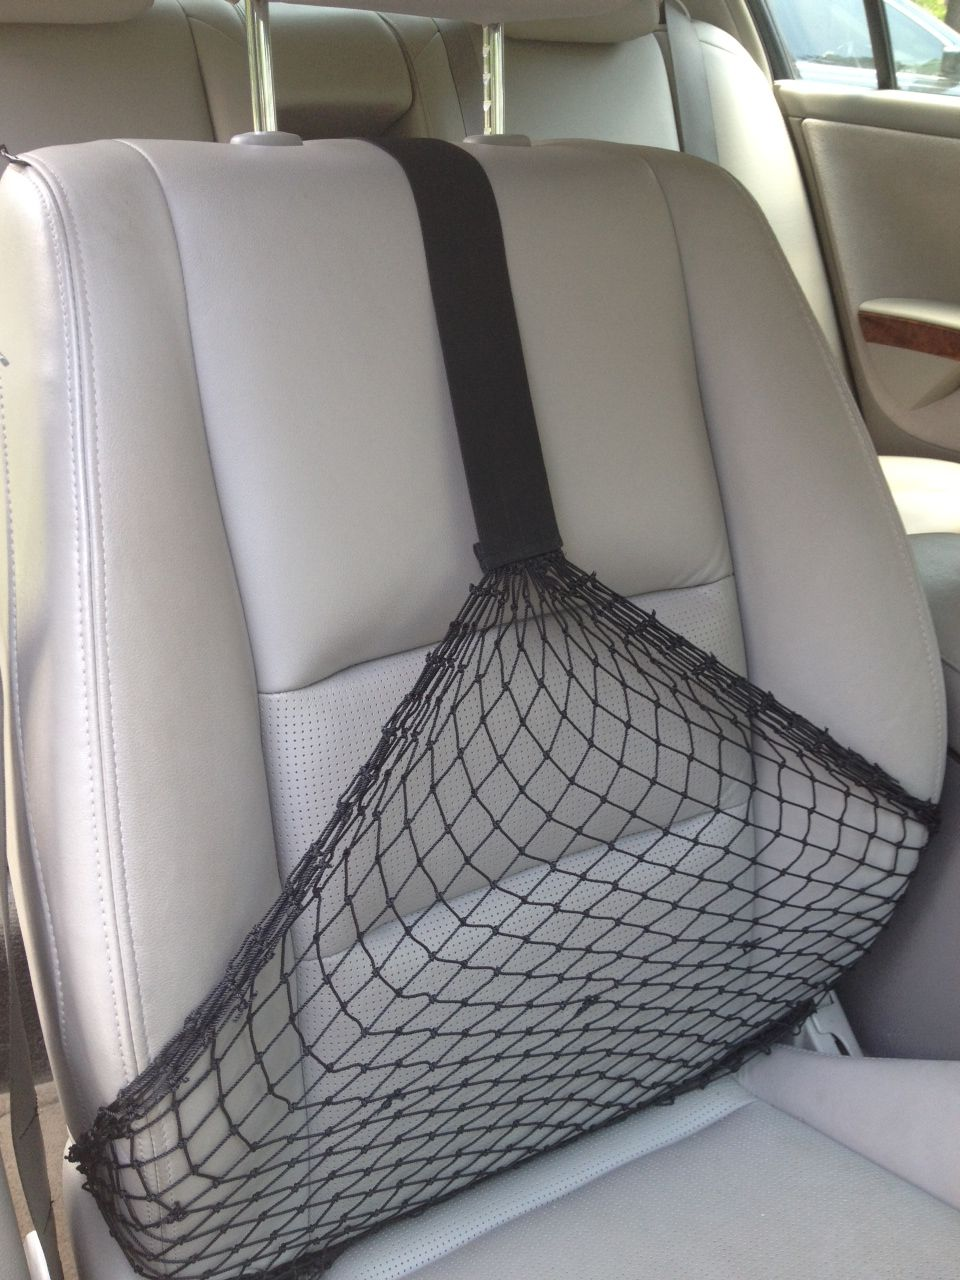 quirky ideations | The Purse Baby would hold a purse or bag securely in the front passenger seat of a vehicle. The loose items will remain on the seat.